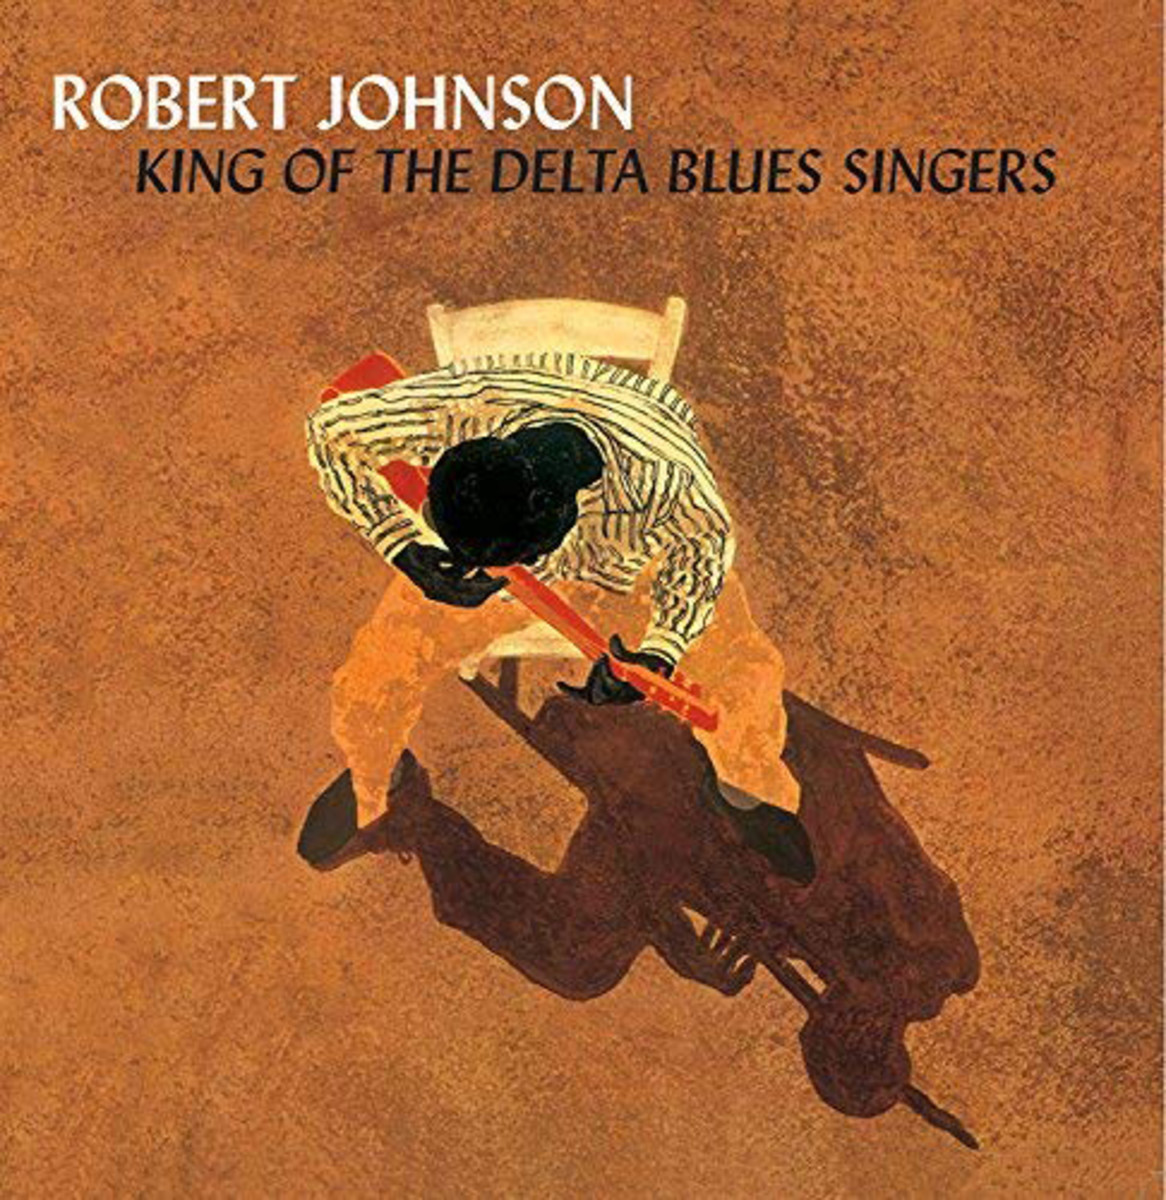 Robert Johnson, King of the Delta Blues Singers